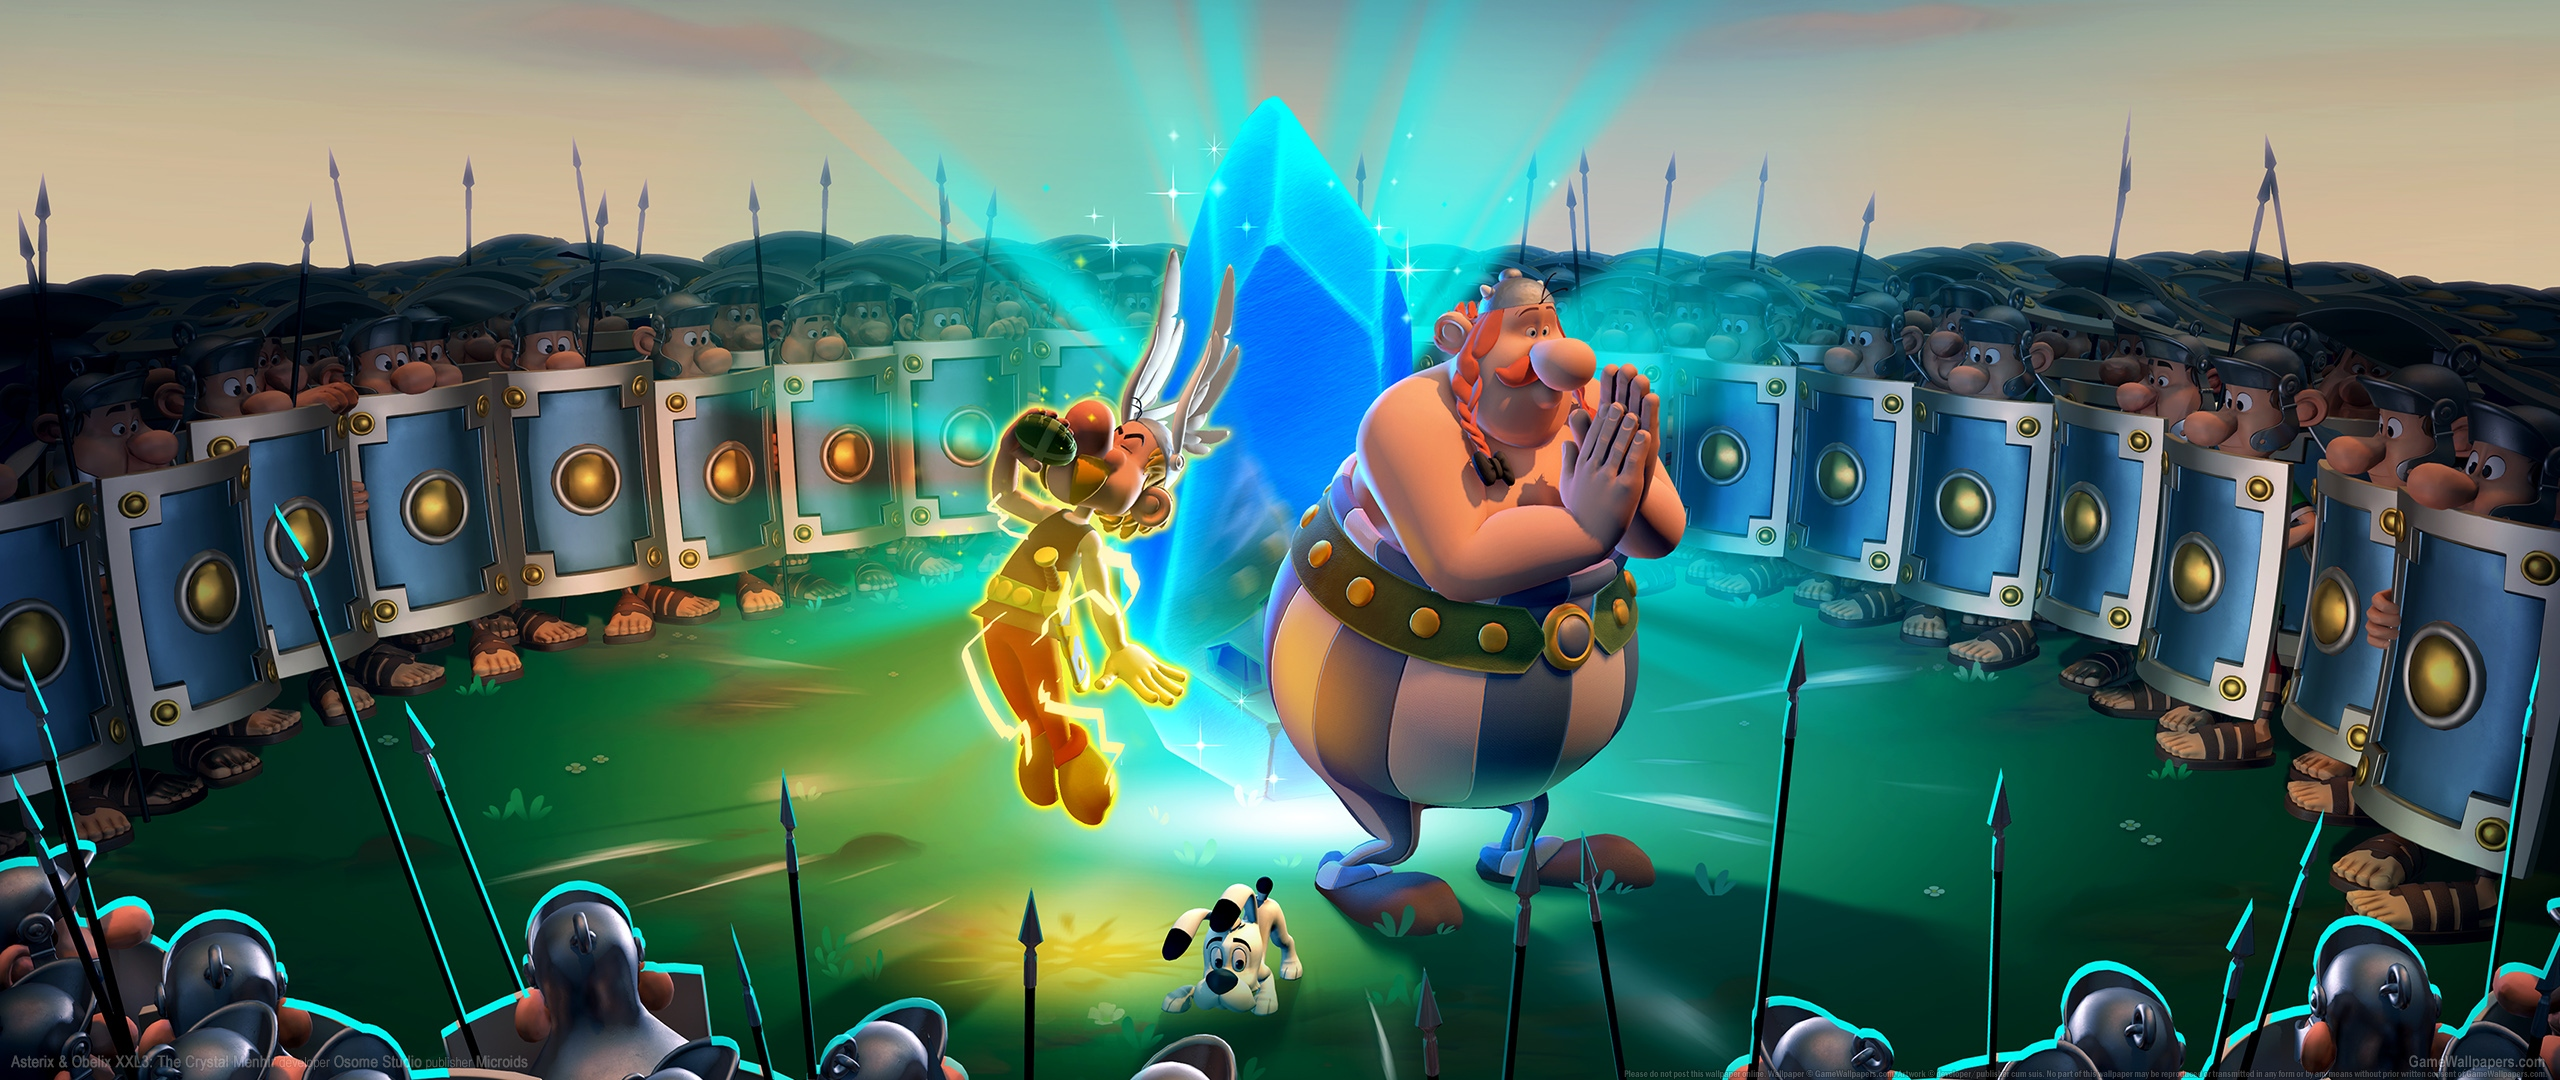 Asterix & Obelix XXL3: The Crystal Menhir 2560x1080 wallpaper or background 01